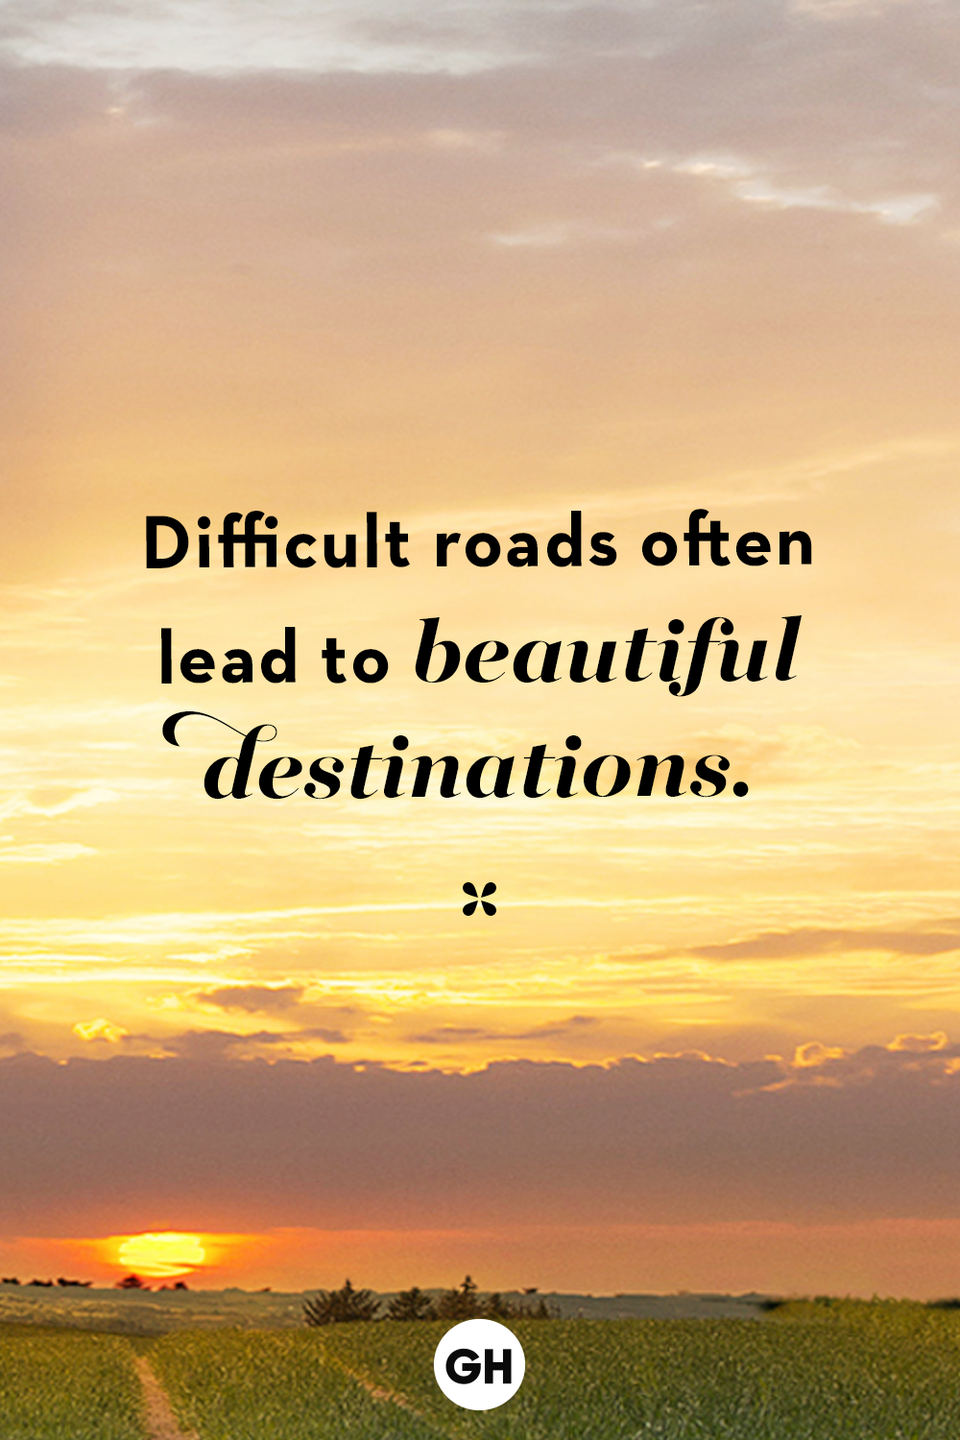 <p>Difficult roads often lead to beautiful destinations.</p>